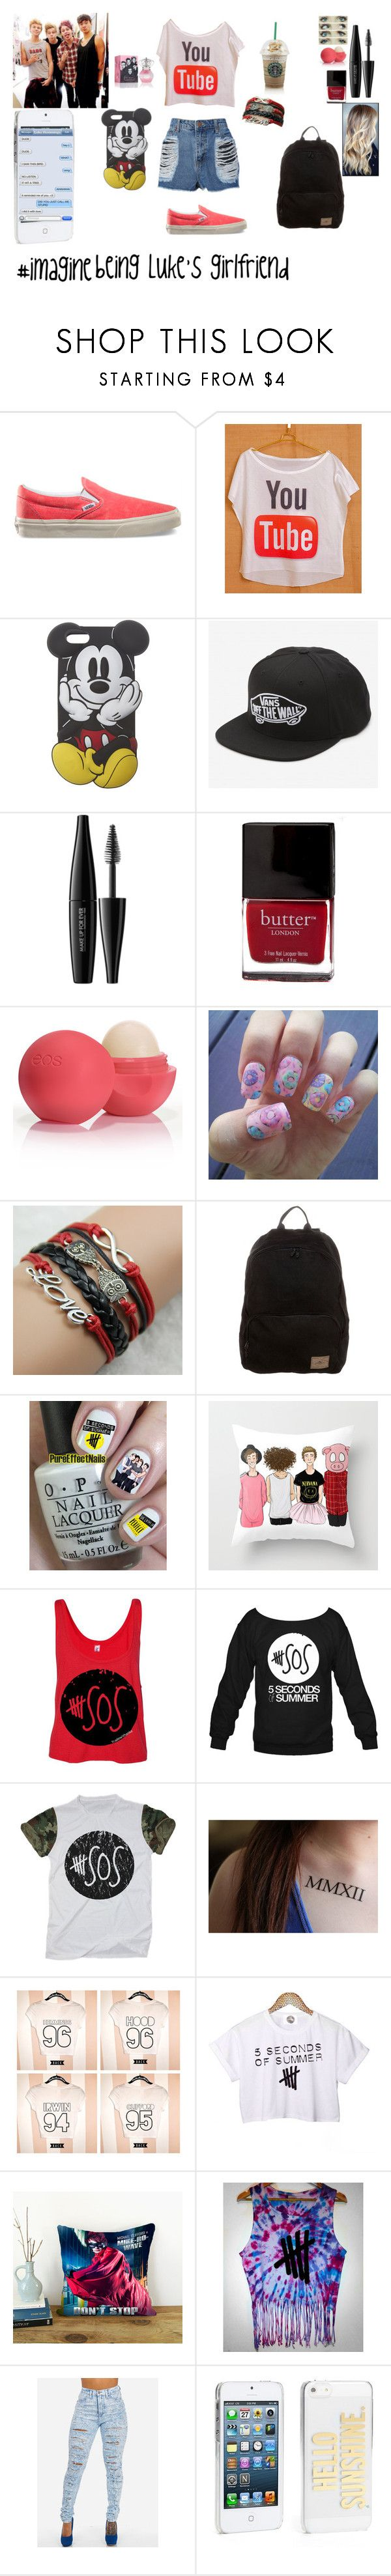 """""""Geen titel #169"""" by nina-niallhoran ❤ liked on Polyvore featuring Vans, By eLUXE, INDIE HAIR, Wet Seal, MAKE UP FOR EVER, Butter London, Eos, O'Neill and Kate Spade"""